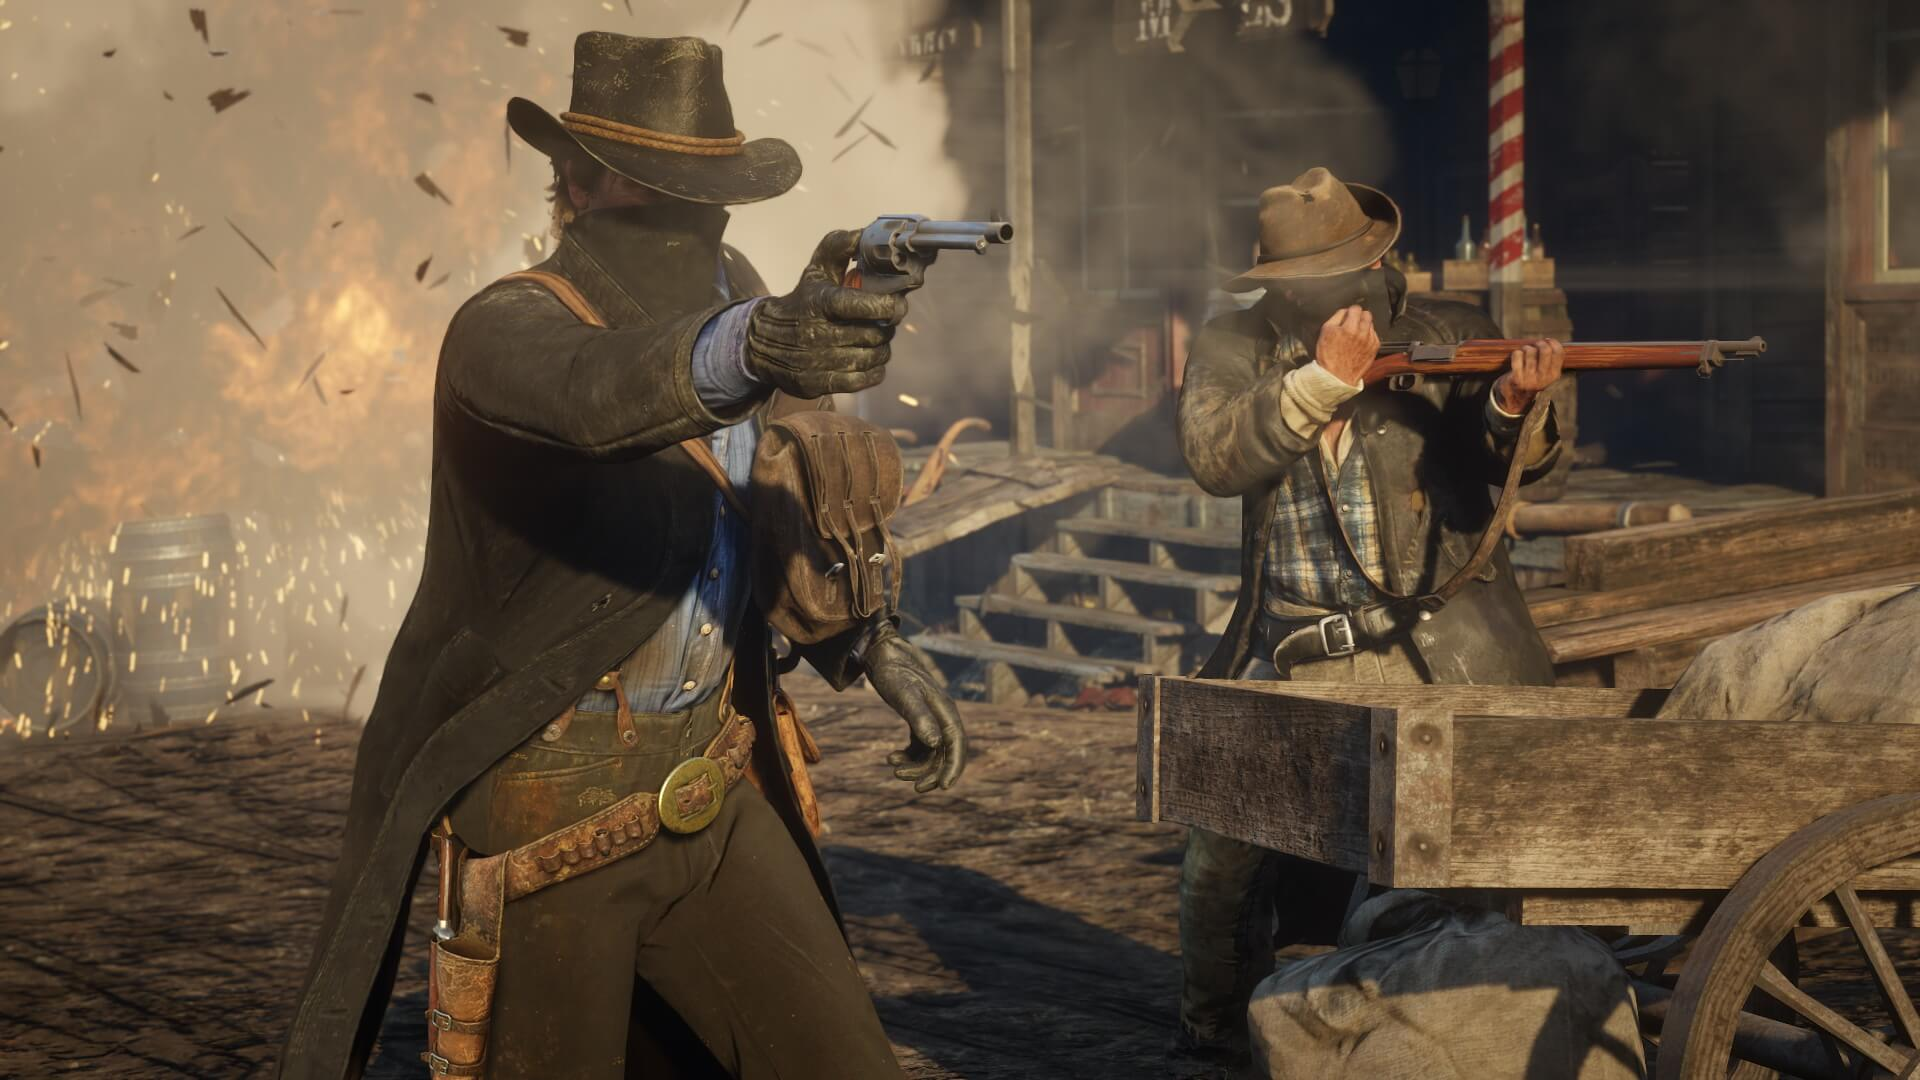 Red Dead Redemption 2 gameplay clip leaks ahead of October 26 release